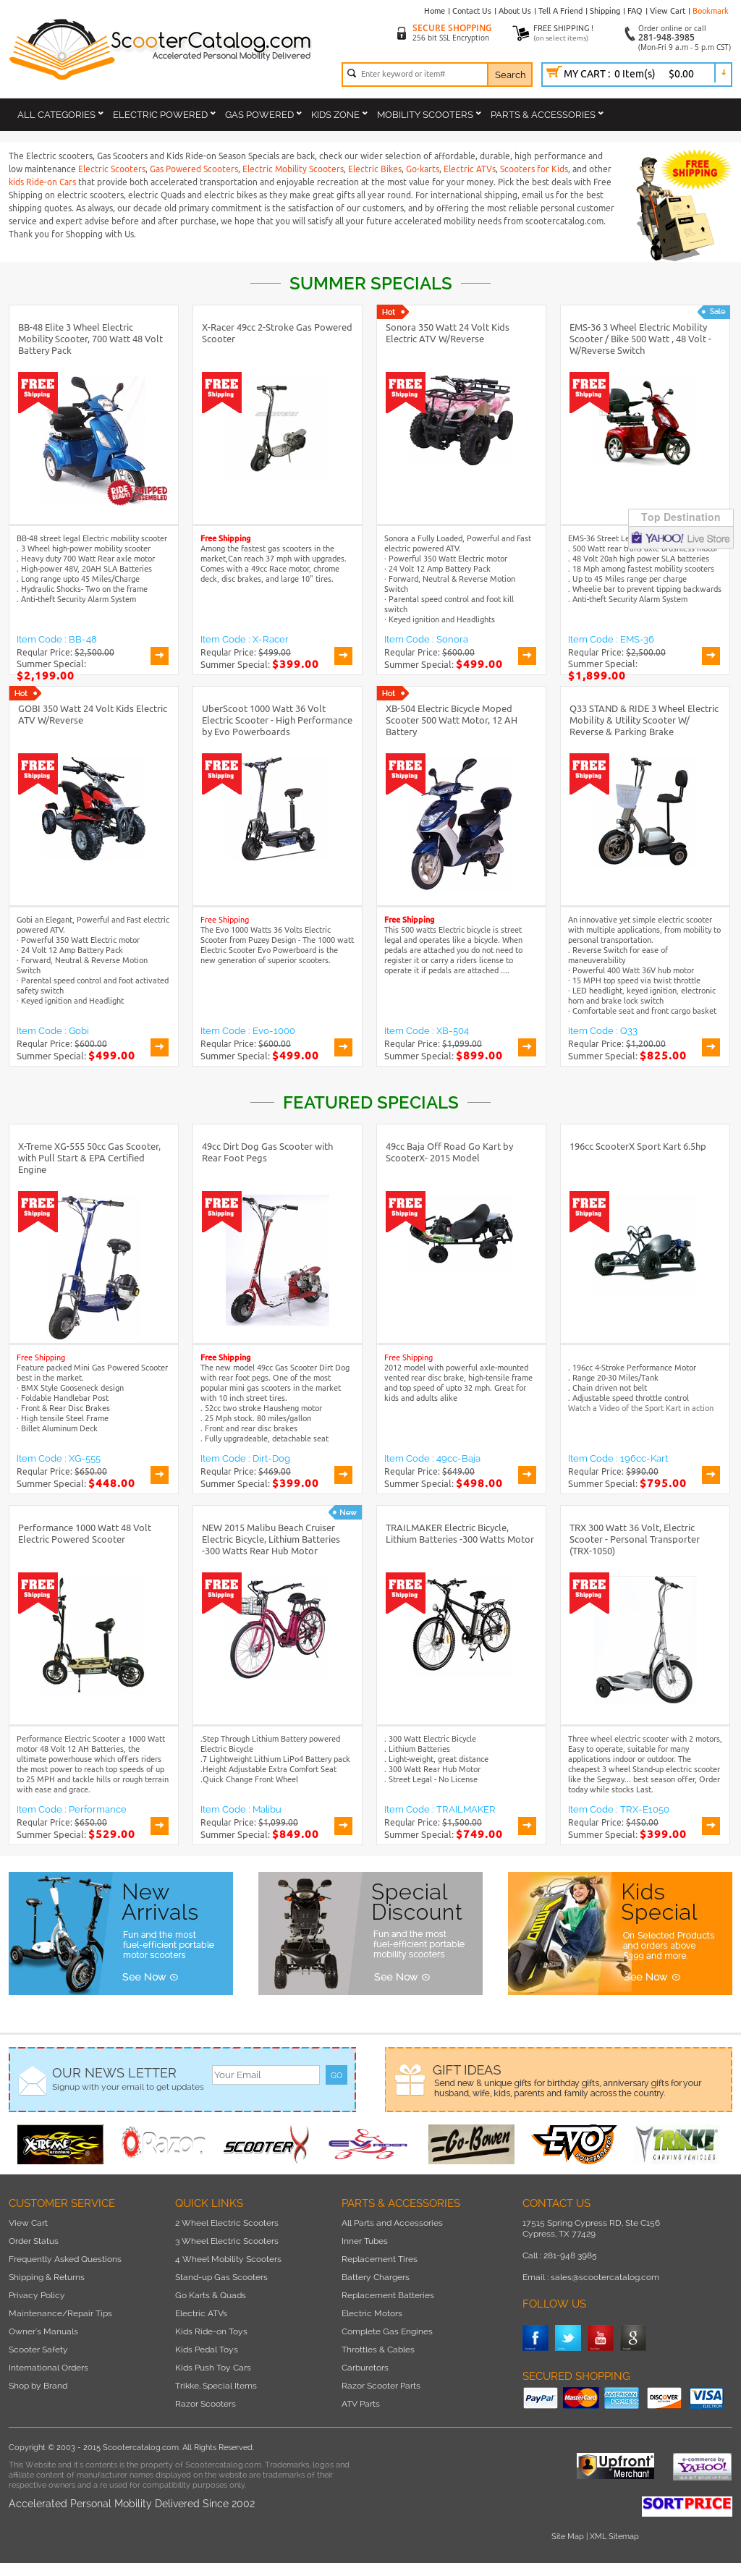 Scootercatalog Competitors Revenue And Employees Owler Company Motor Control Cypress Profile